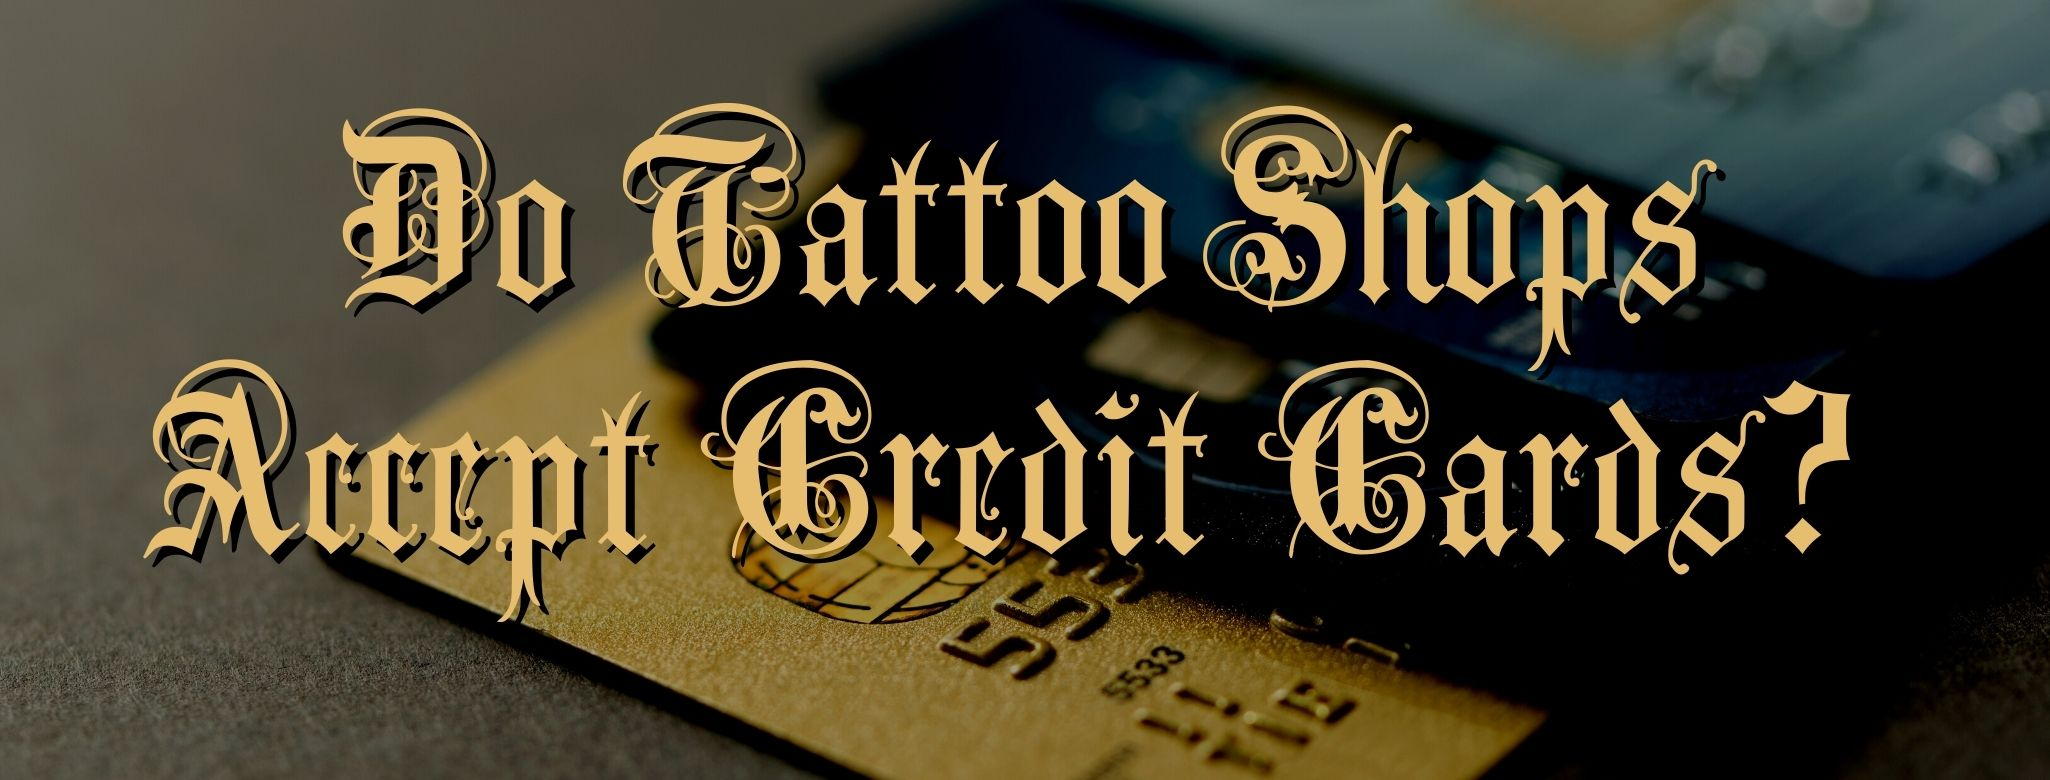 Do Tattoo Shops Accept Credit Cards